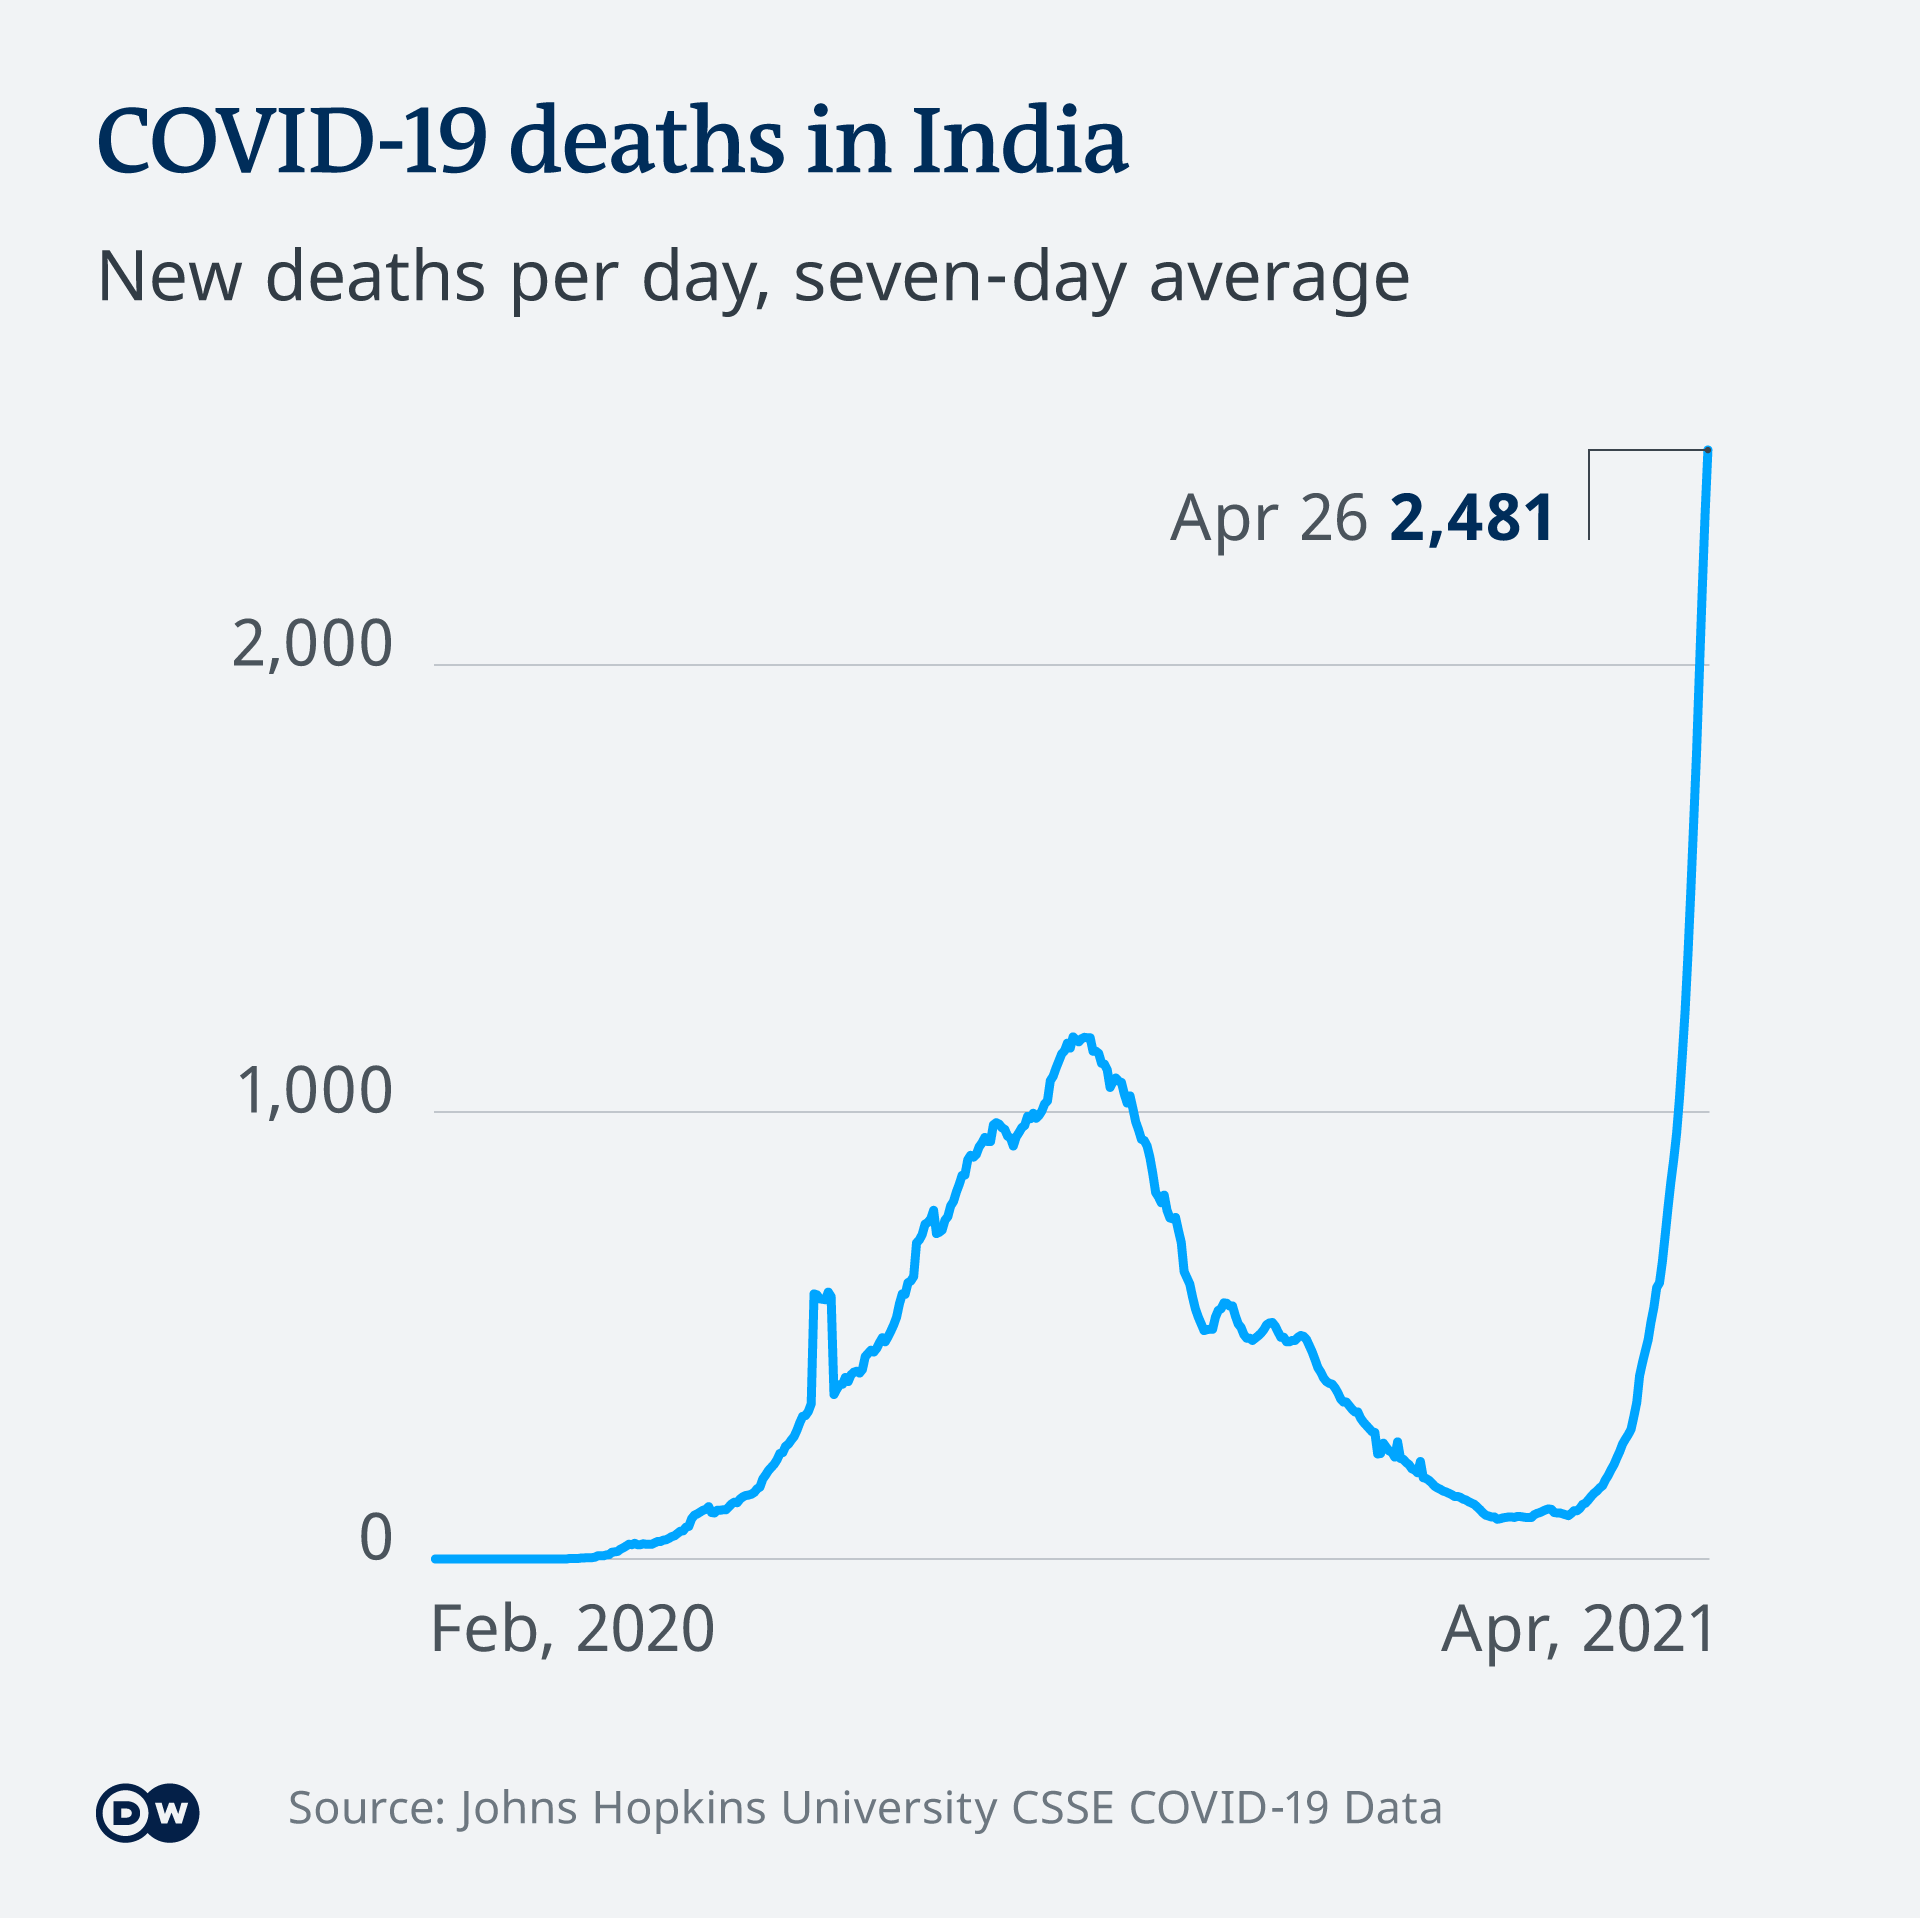 Graphic: COVID-19 deaths in India